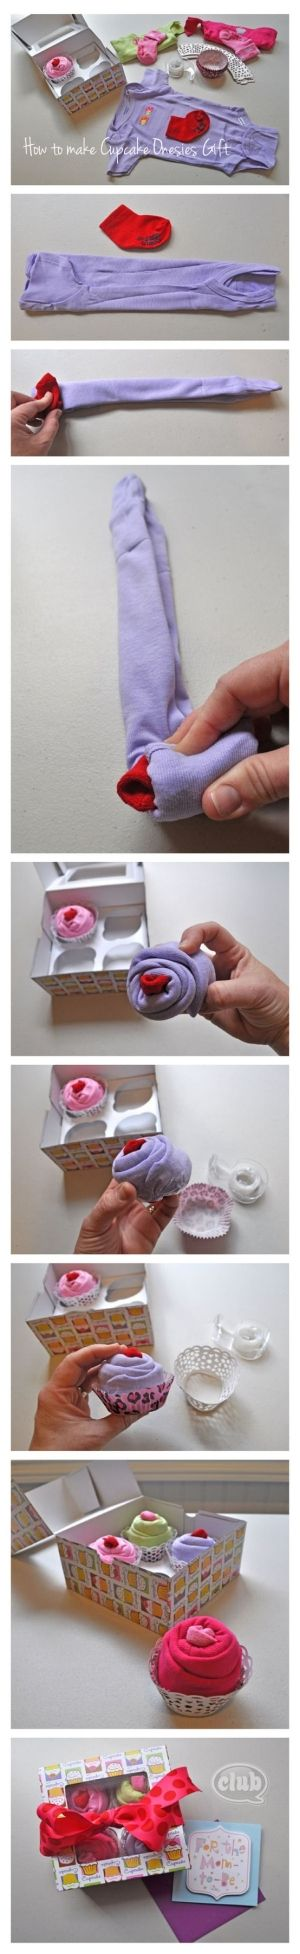 Cupcake onesies baby gift - perfect homemade gift idea. So cute and always a hit at the baby shower!.... Hmmmm wonder if you could do this for a teen with bootie scocks and a t-shirt? by Hicks